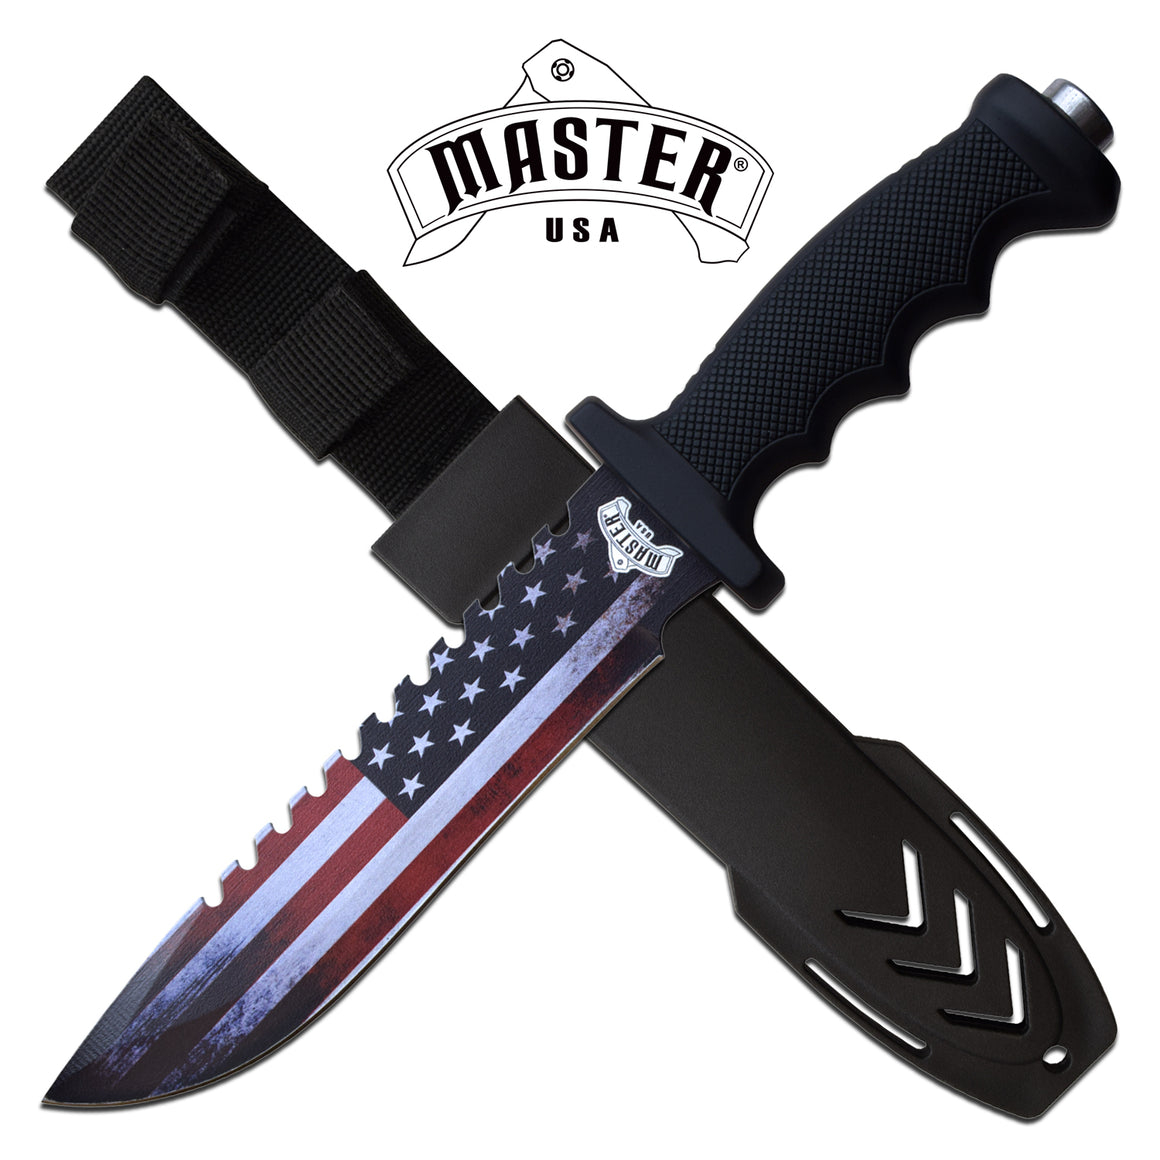 Masters USA MU-20-04A Fixed Blade Knife